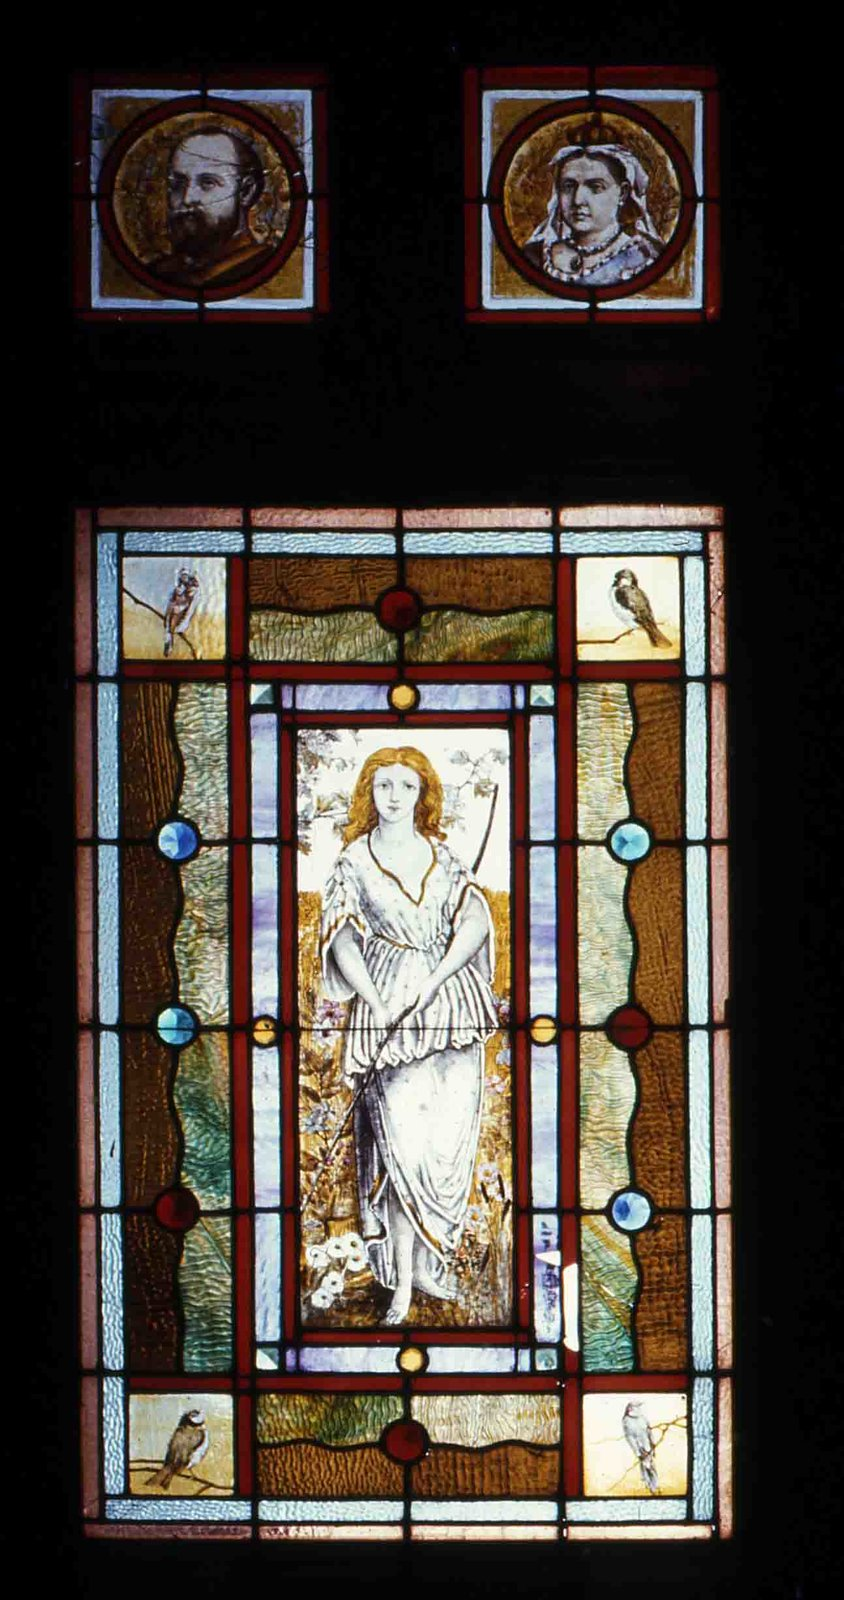 Plate 56, Stained glass door, Sylvester house, Lindsay